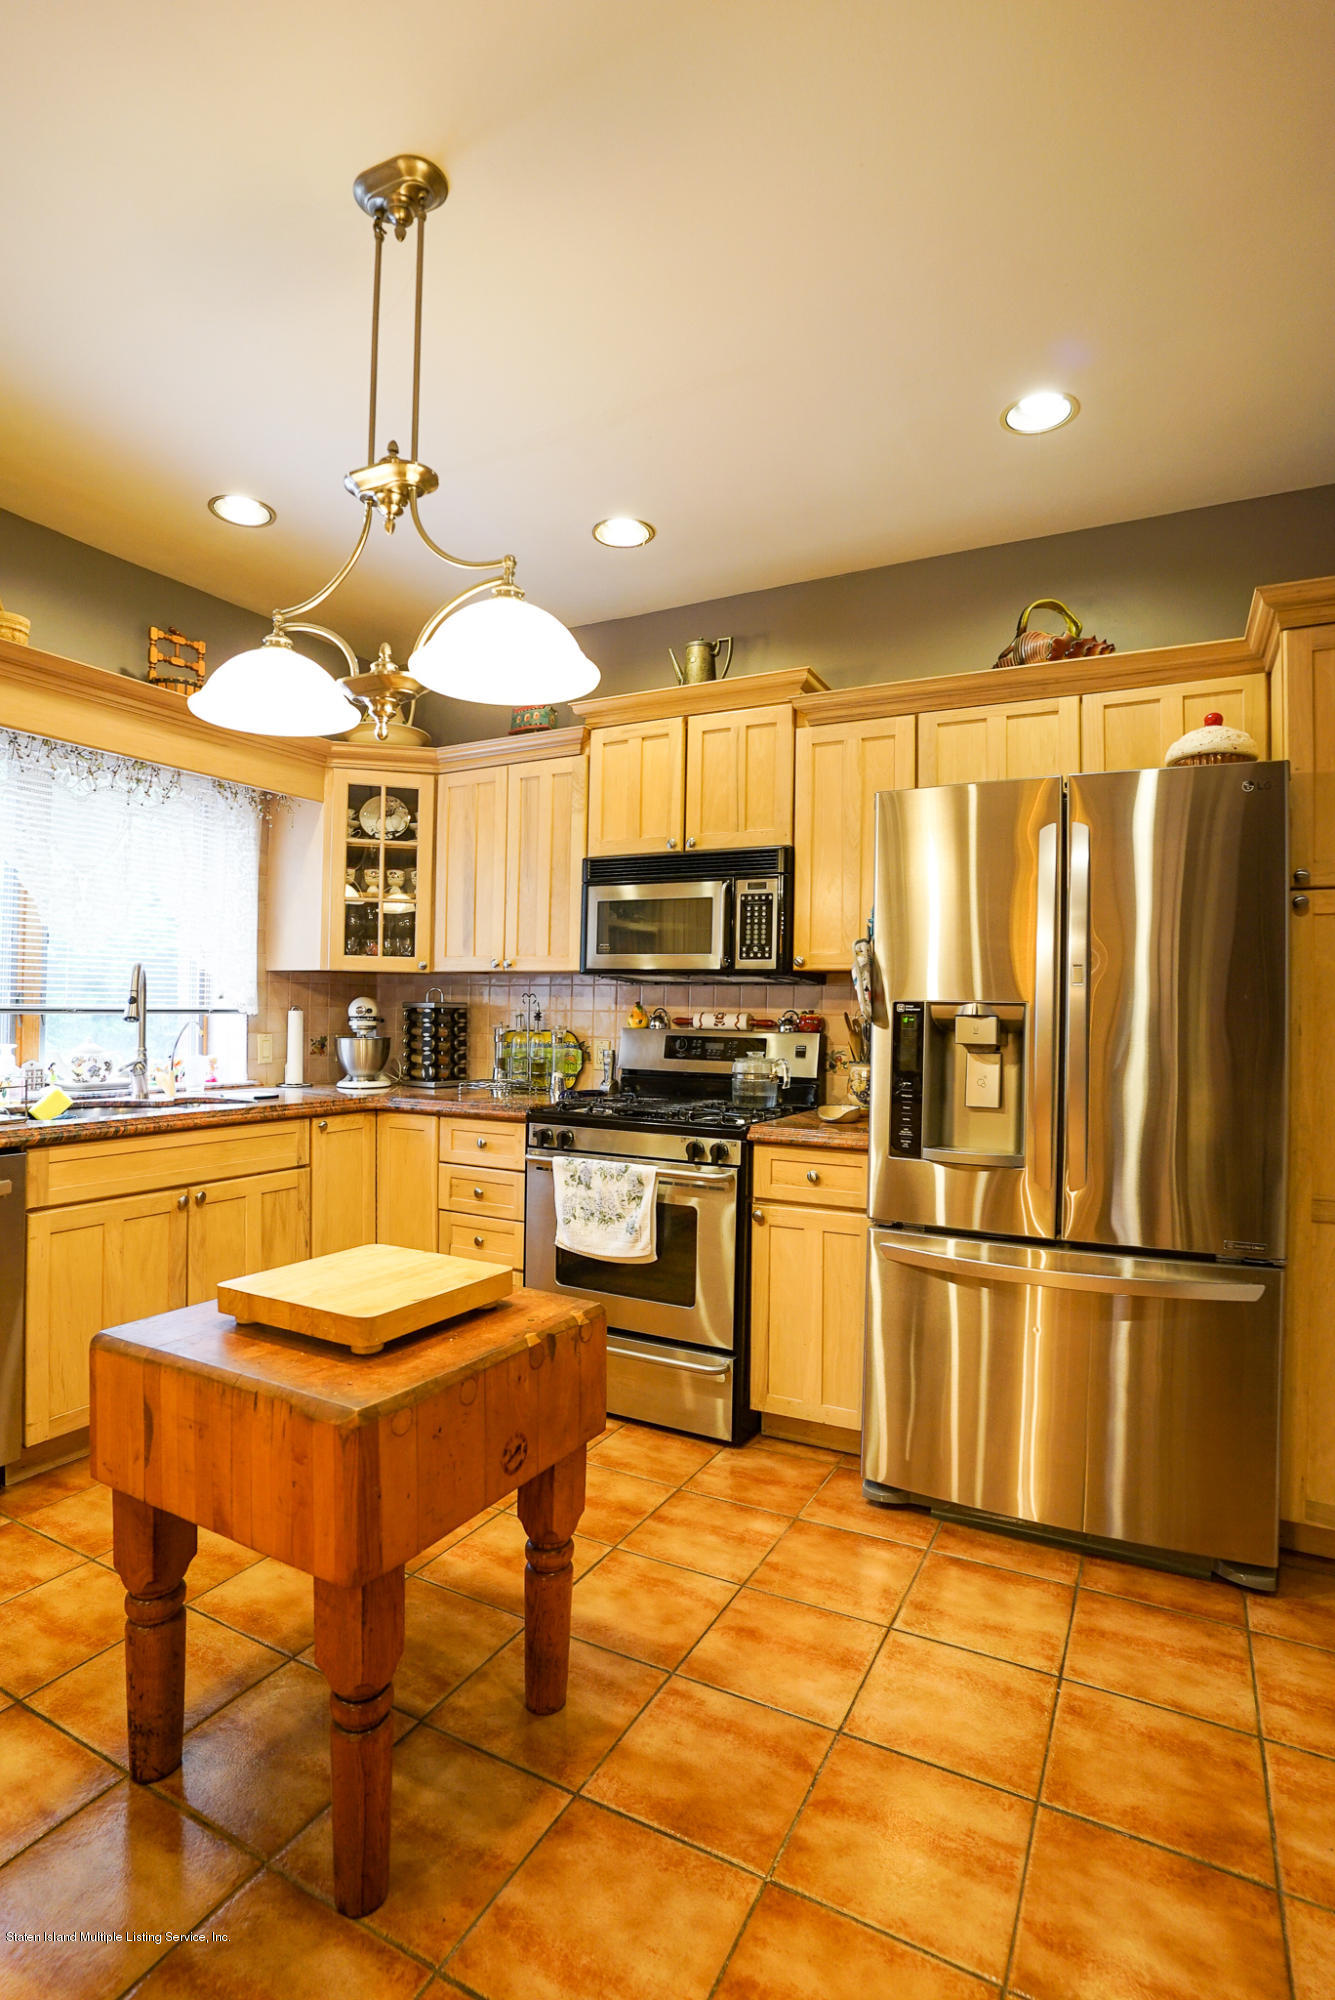 Single Family - Detached 81 Sharrotts Road  Staten Island, NY 10309, MLS-1140126-25